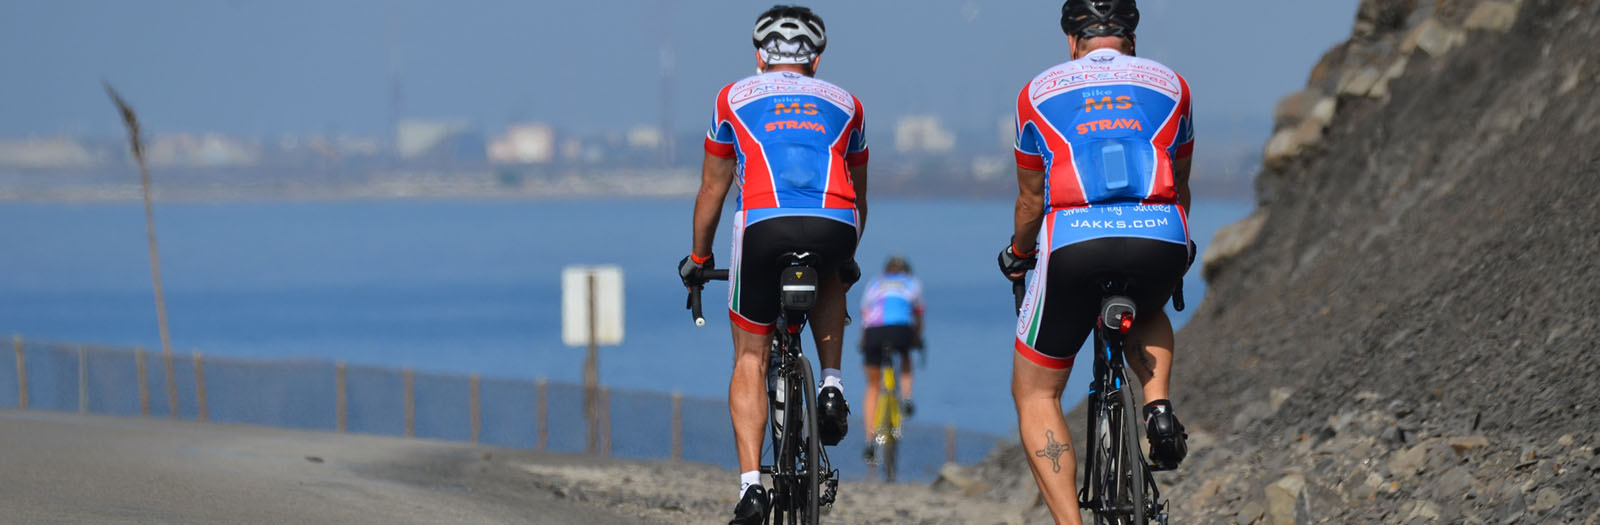 Bike MS Coastal Challenge: Santa Monica to Santa Barbara